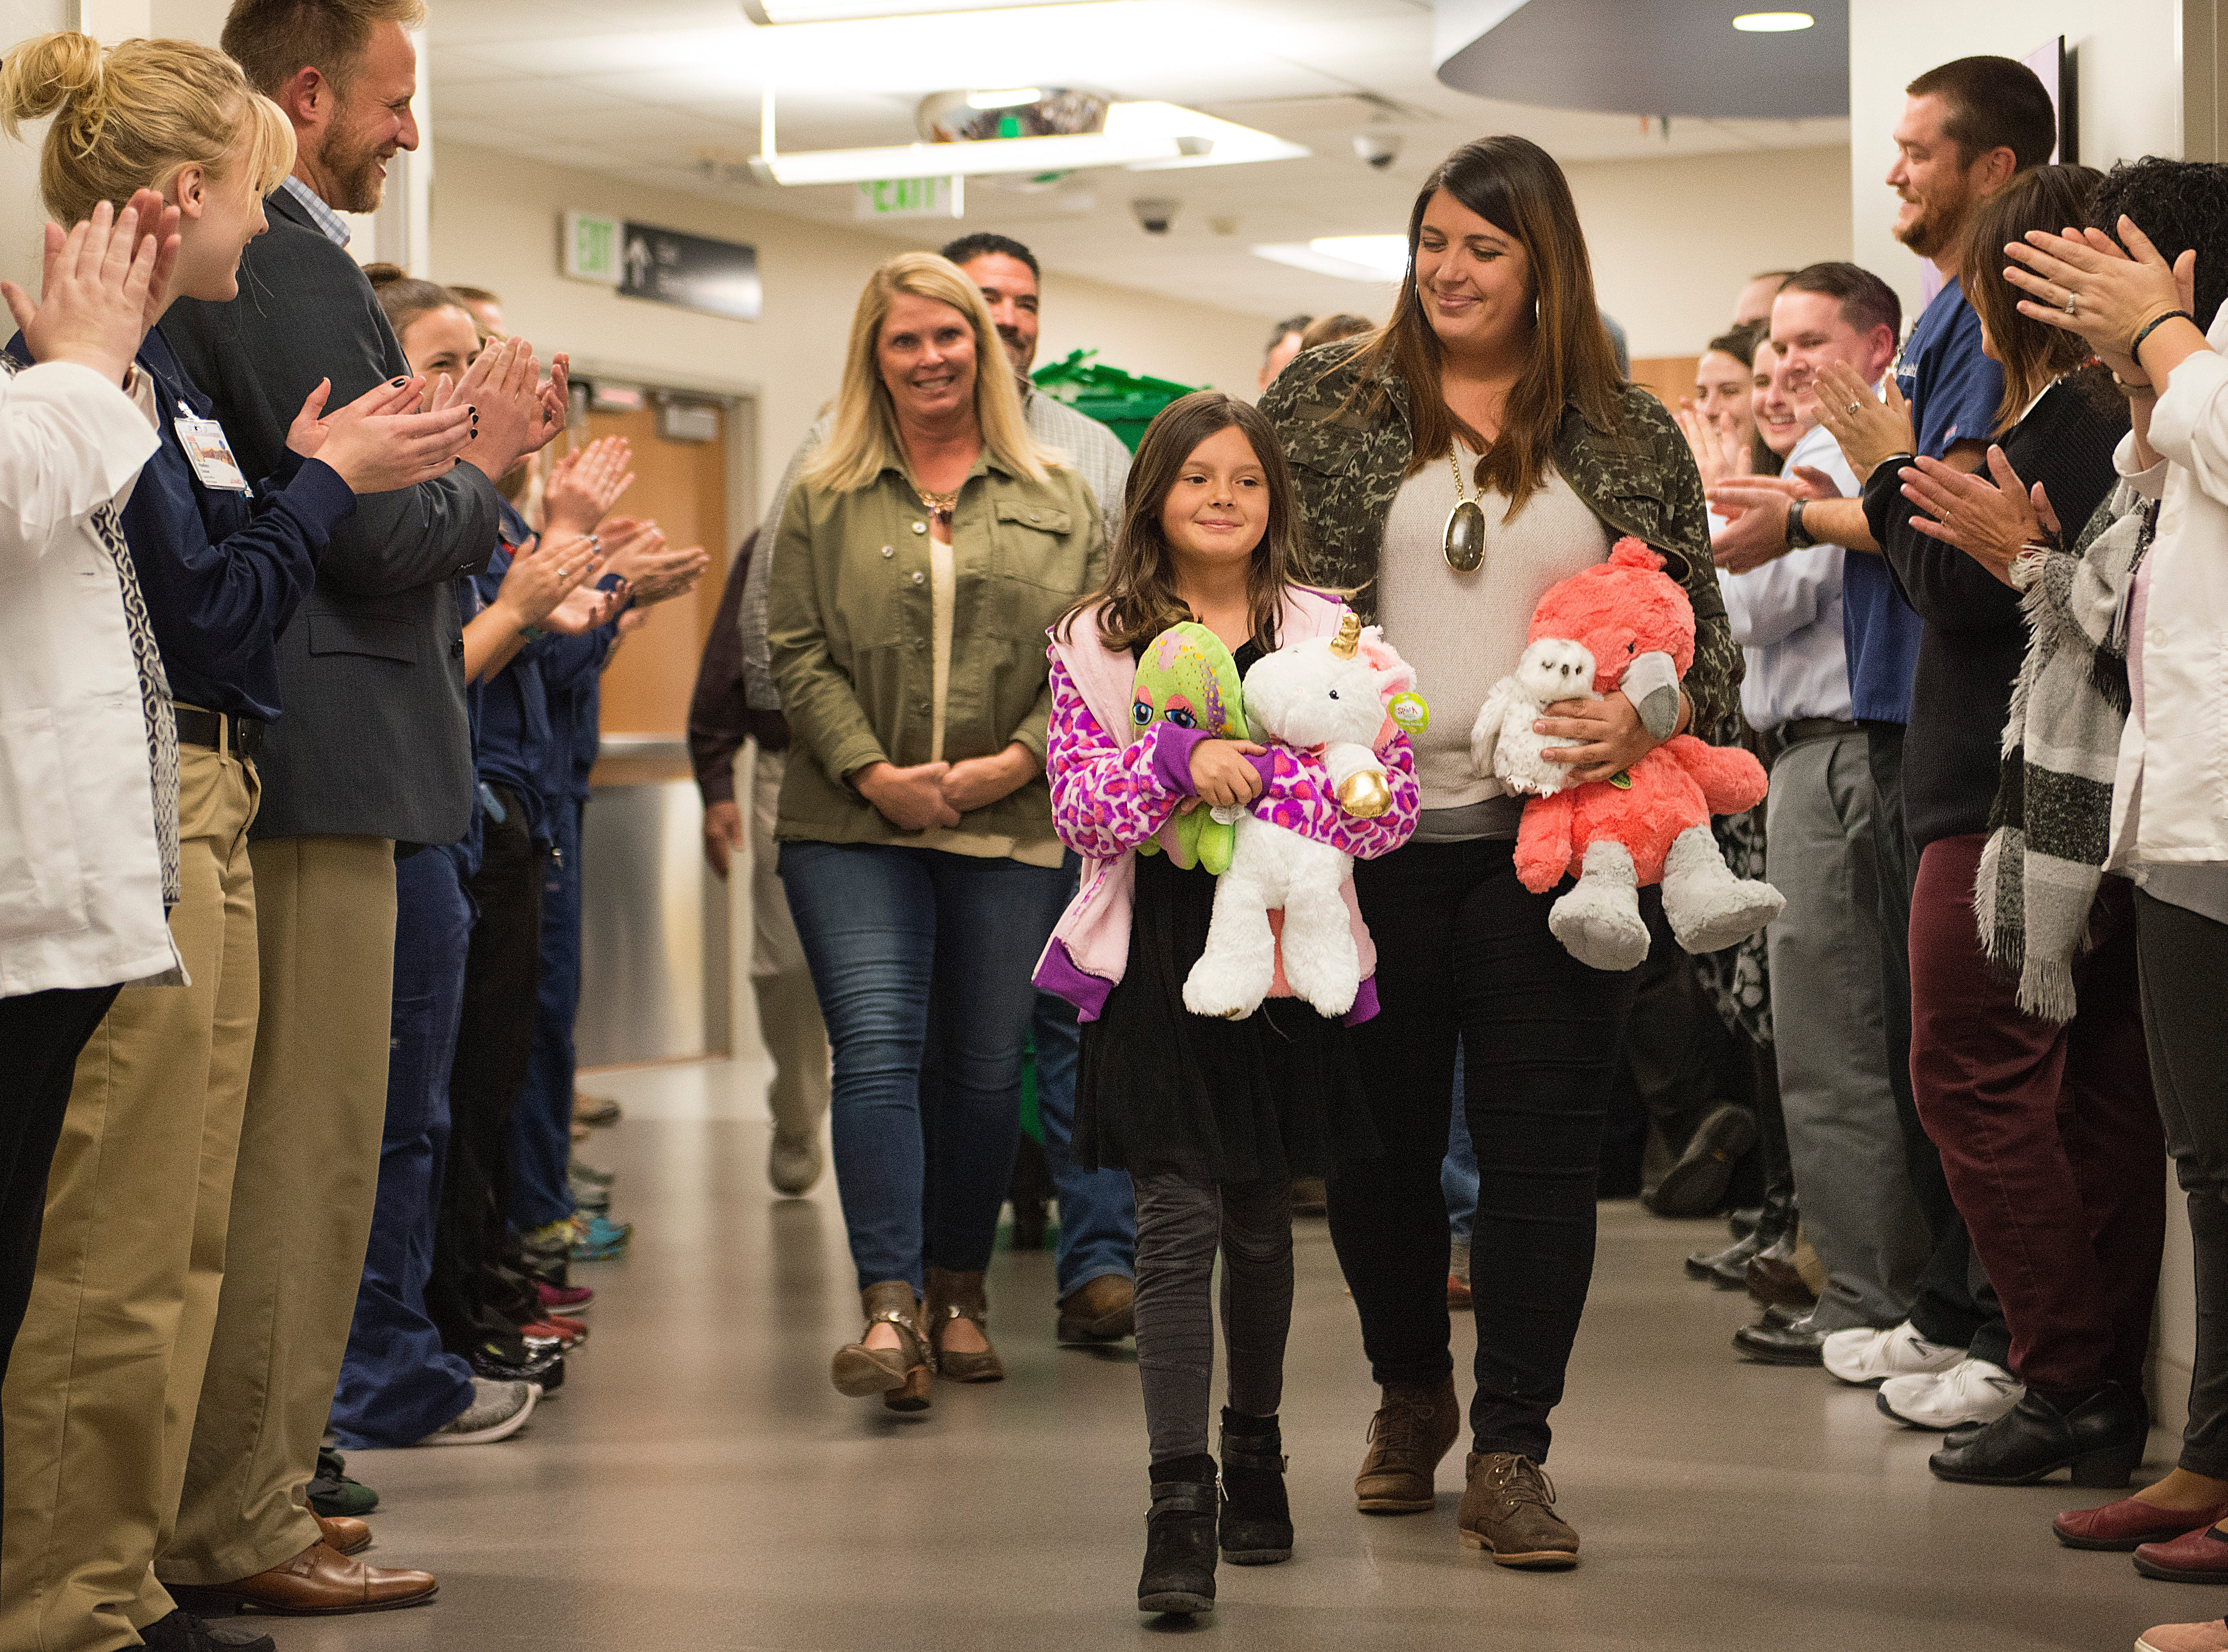 8-year-old Marlie Walker gets a warm welcome from emergency room staff as she delivers over 600 stuffed animals she collected for children experiencing a crisis at Poudre Valley Hospital on Monday, November 26, 2018. Walker was comforted by a stuffed animal given by an emergency room nurse after her father was killed in a motorcycle crash this year.